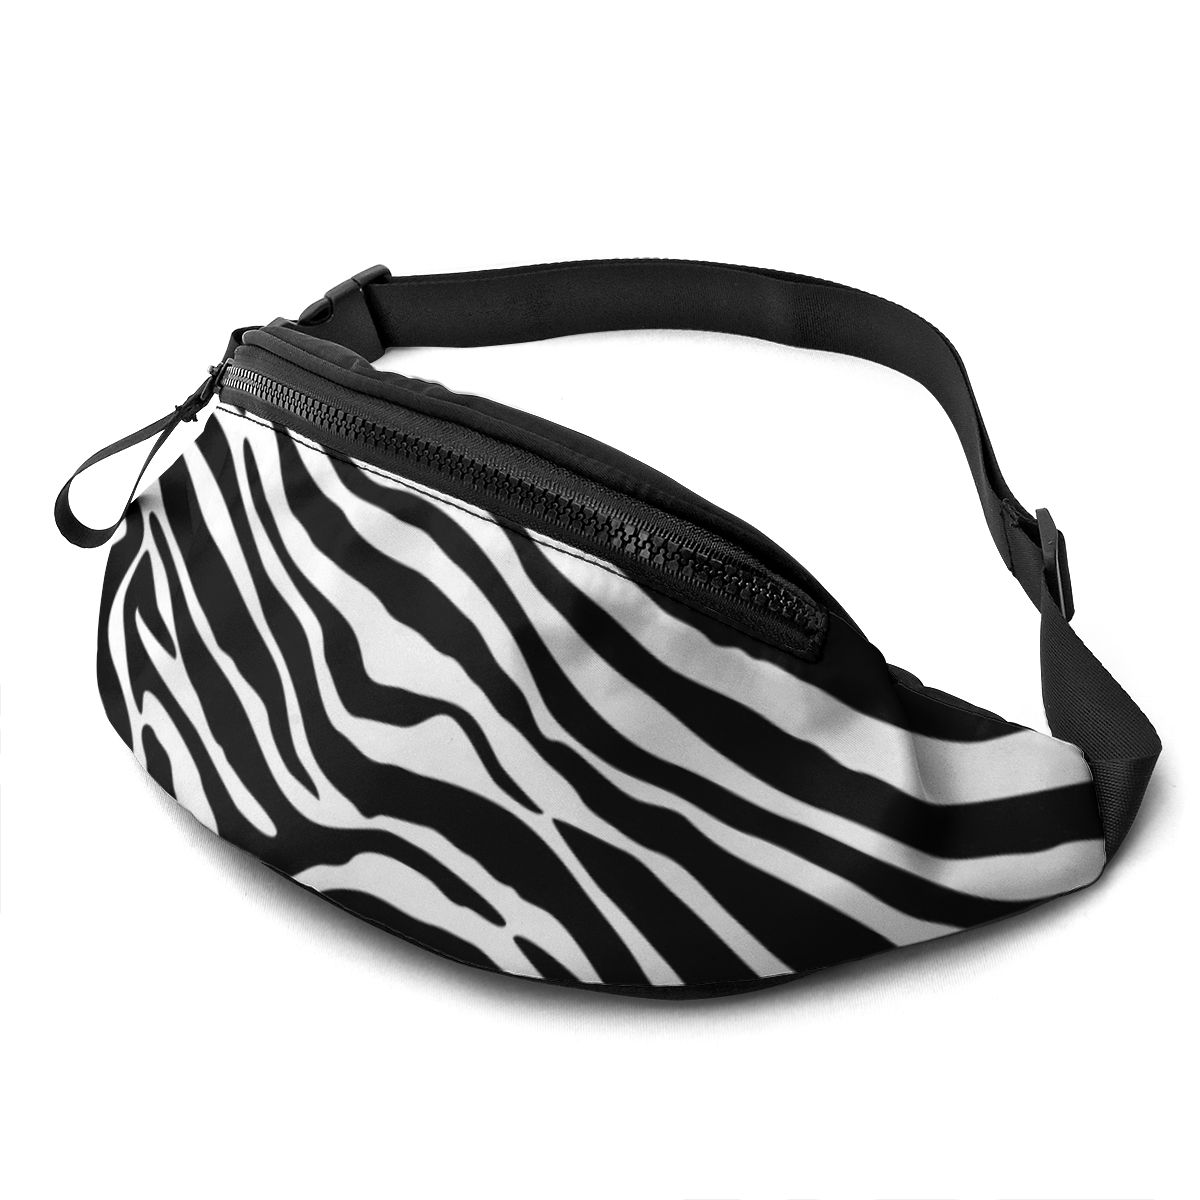 NOISYDESIGNS 2020 Newest Hot Unisex Women Man Waist Pack Belt Travel Bag Purse Chest Pack Street Style Zebra Pattern Printed